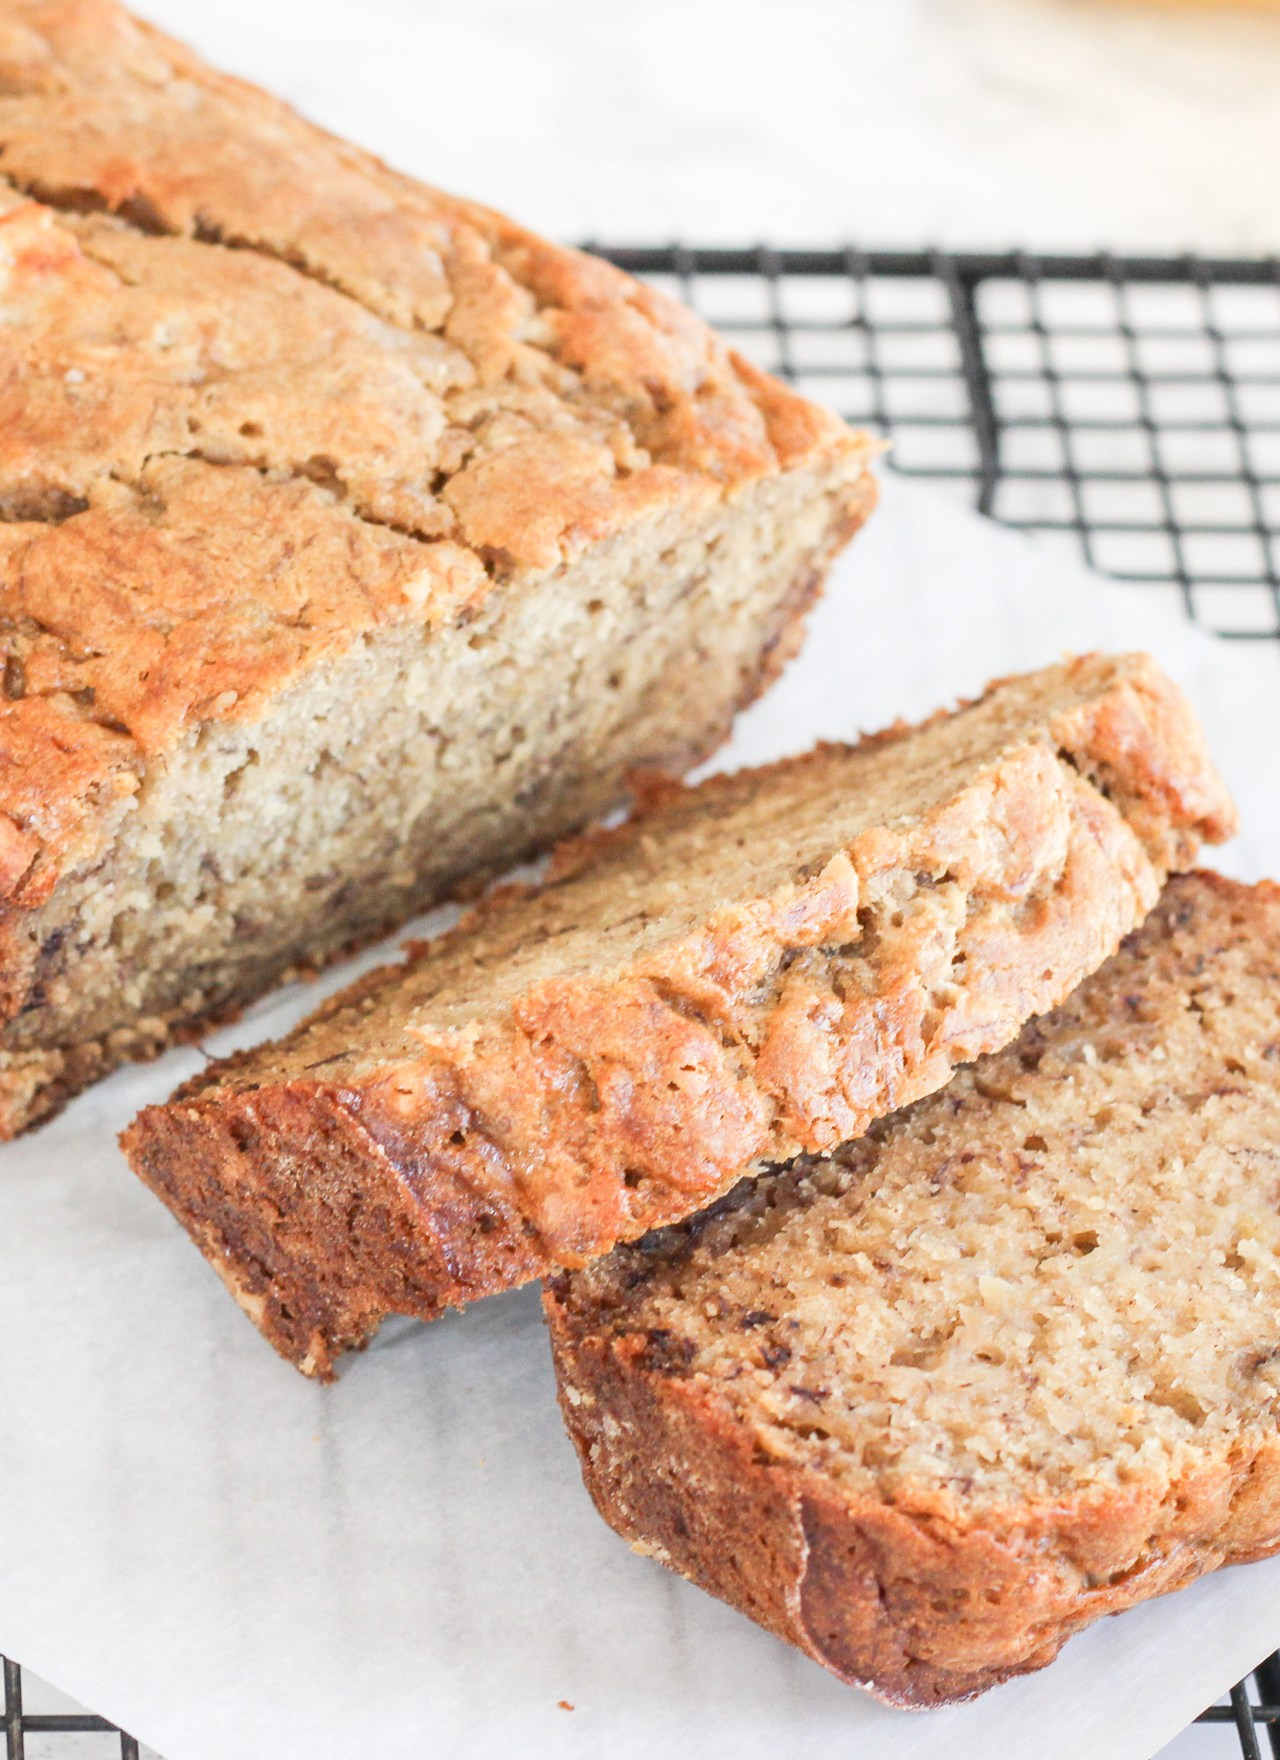 THE BEST HEALTHY BANANA BREAD RECIPE | BANANA BREAD RECIPE | EASY BANANA BEST |